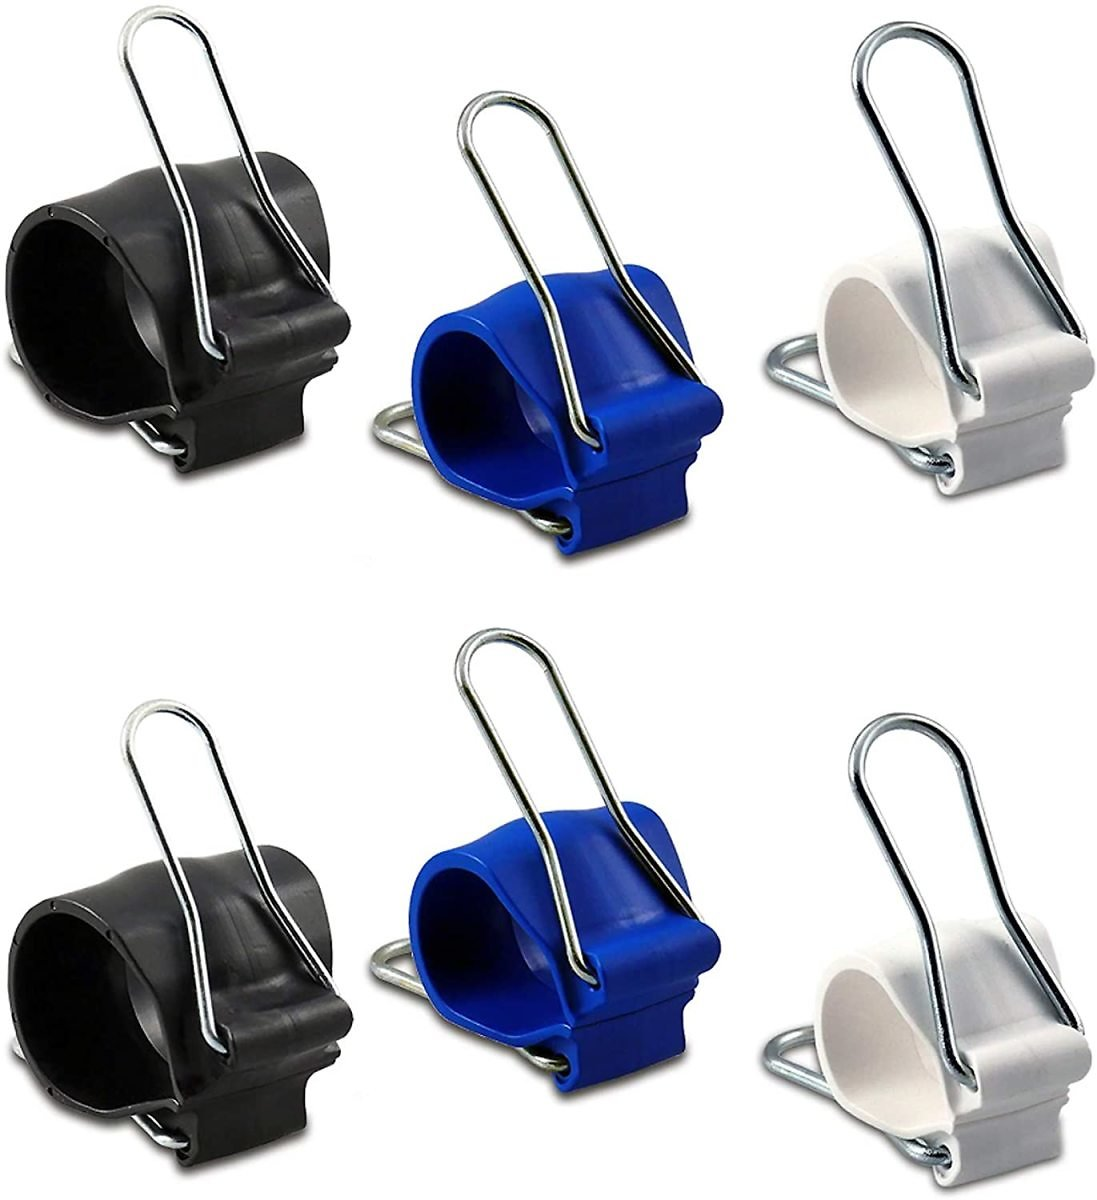 GadgetKlip Variety Packs: Universal Cable and Cord Organizing Clip for Managing Cords, Plants, Cables, Wires, Home, Offices, Gar